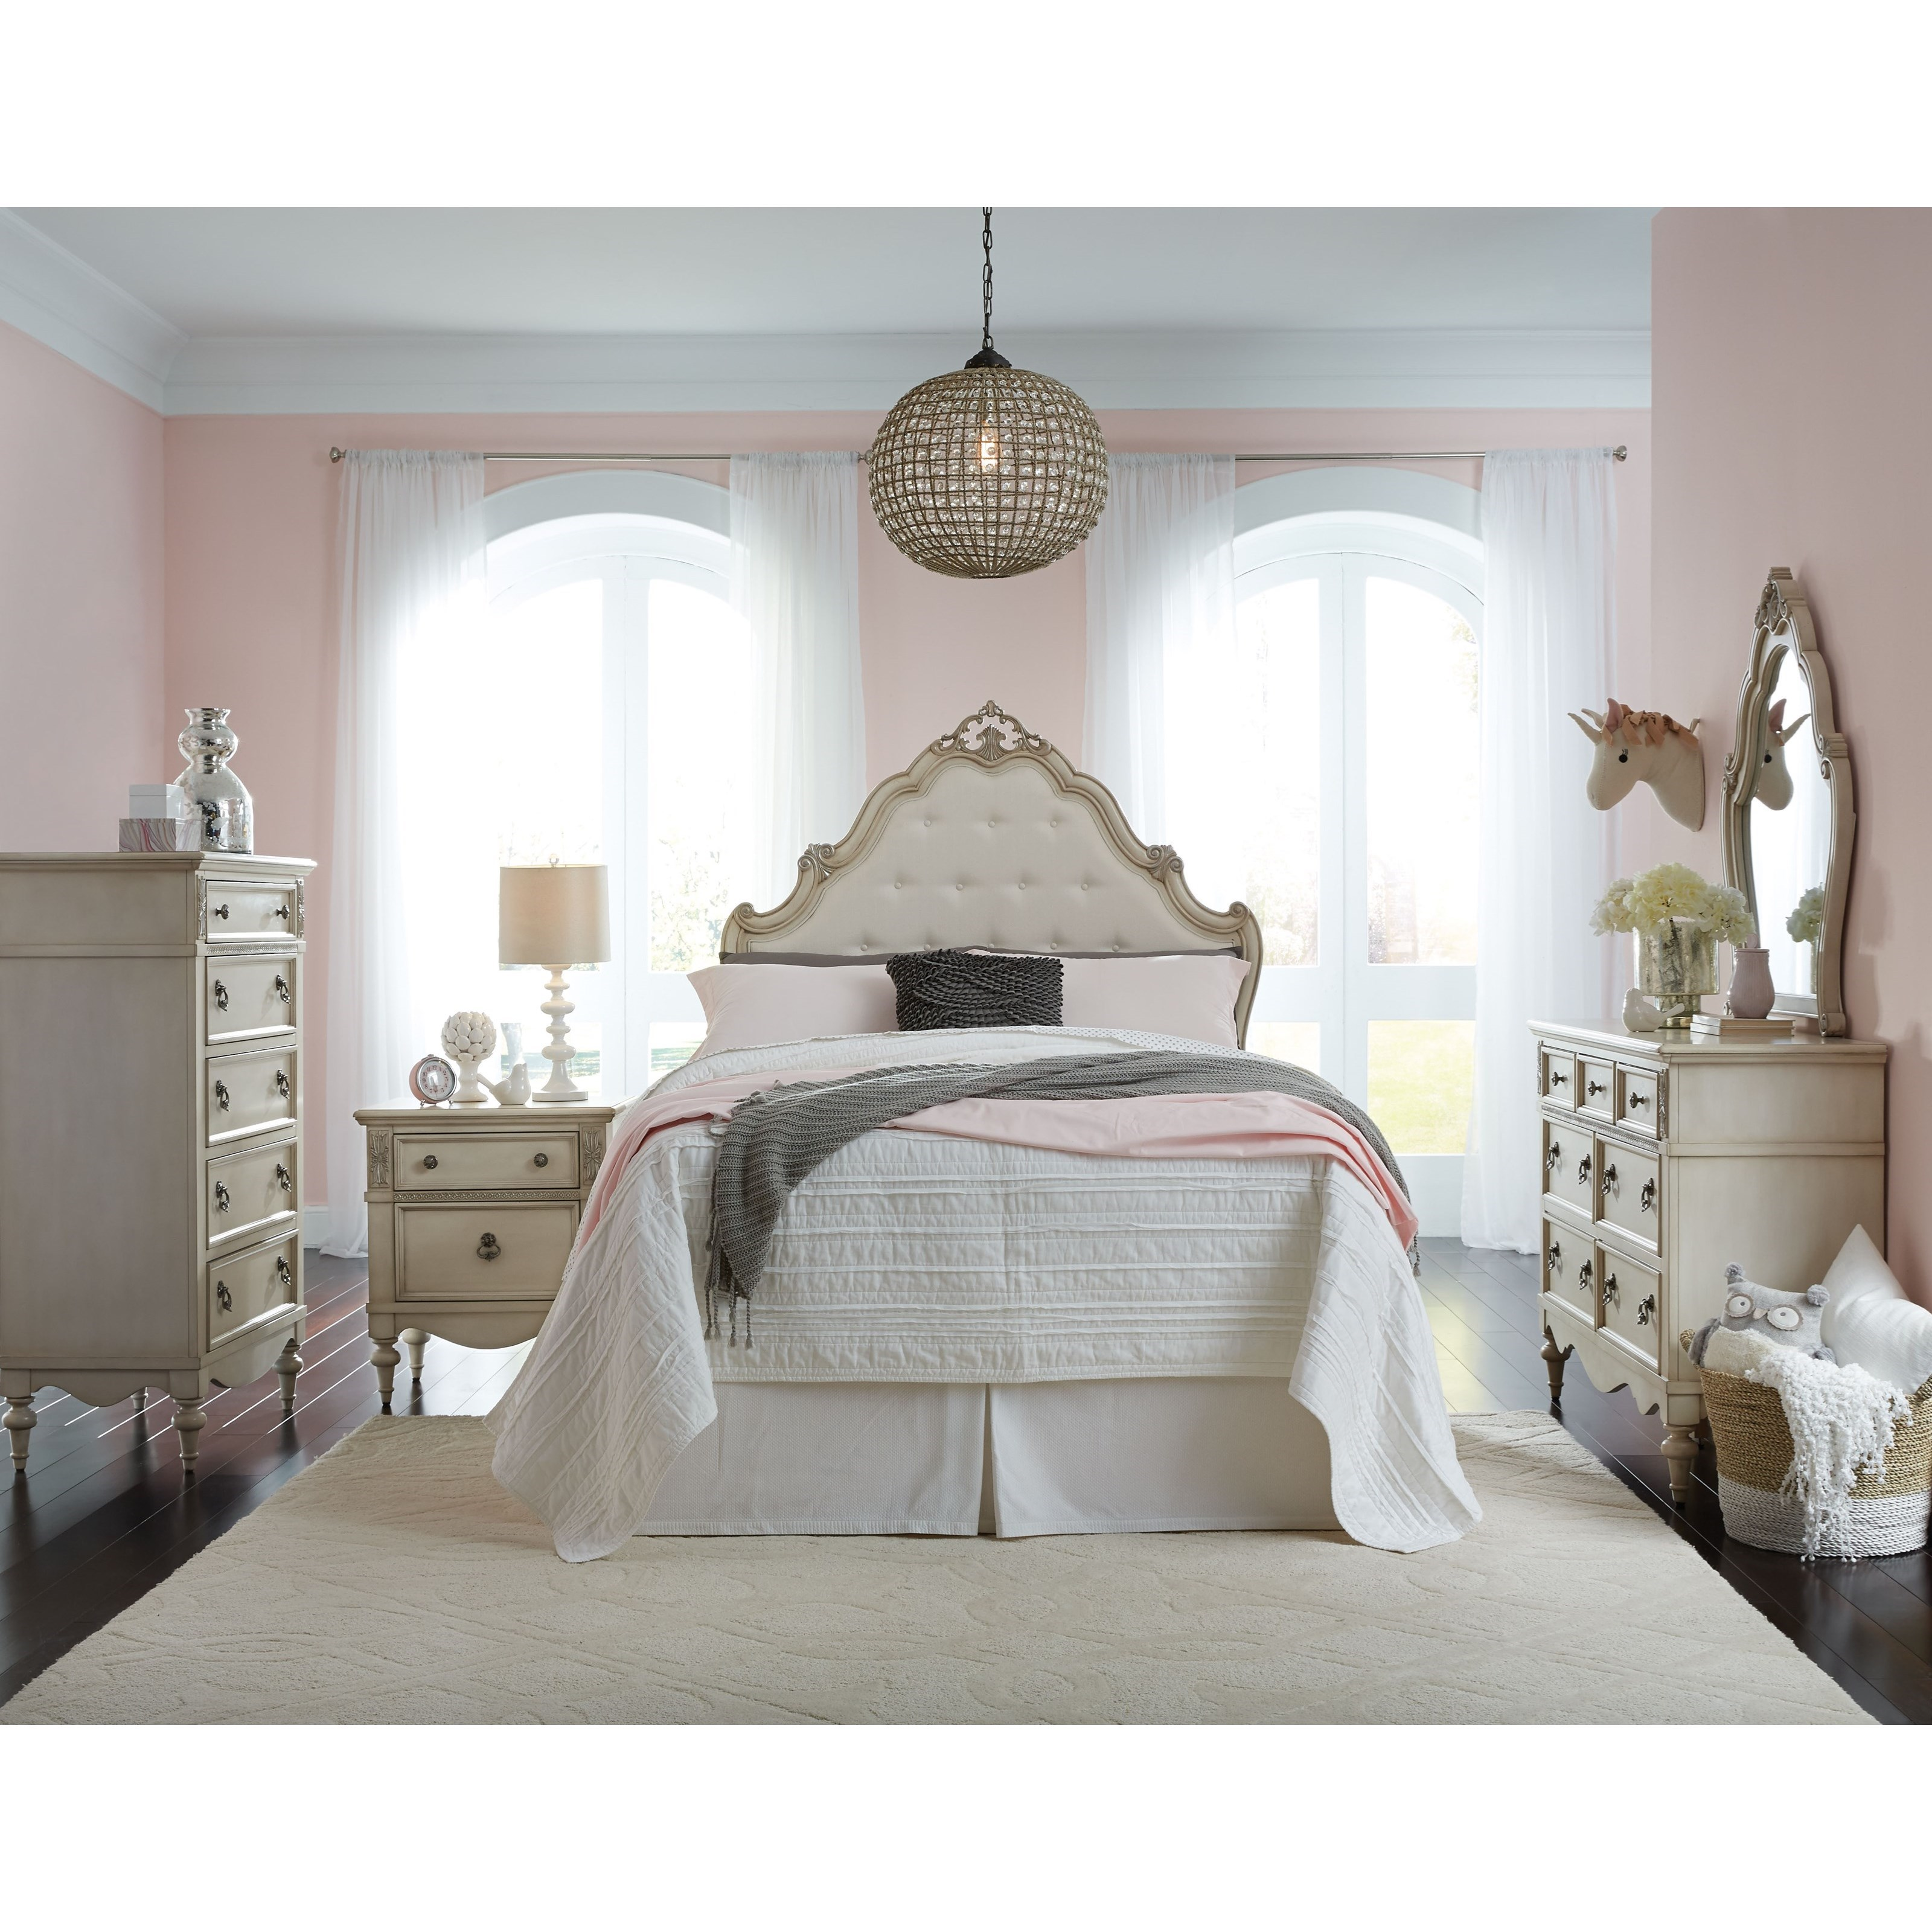 Standard furniture giselle full bedroom group dunk for Bedroom furniture groups